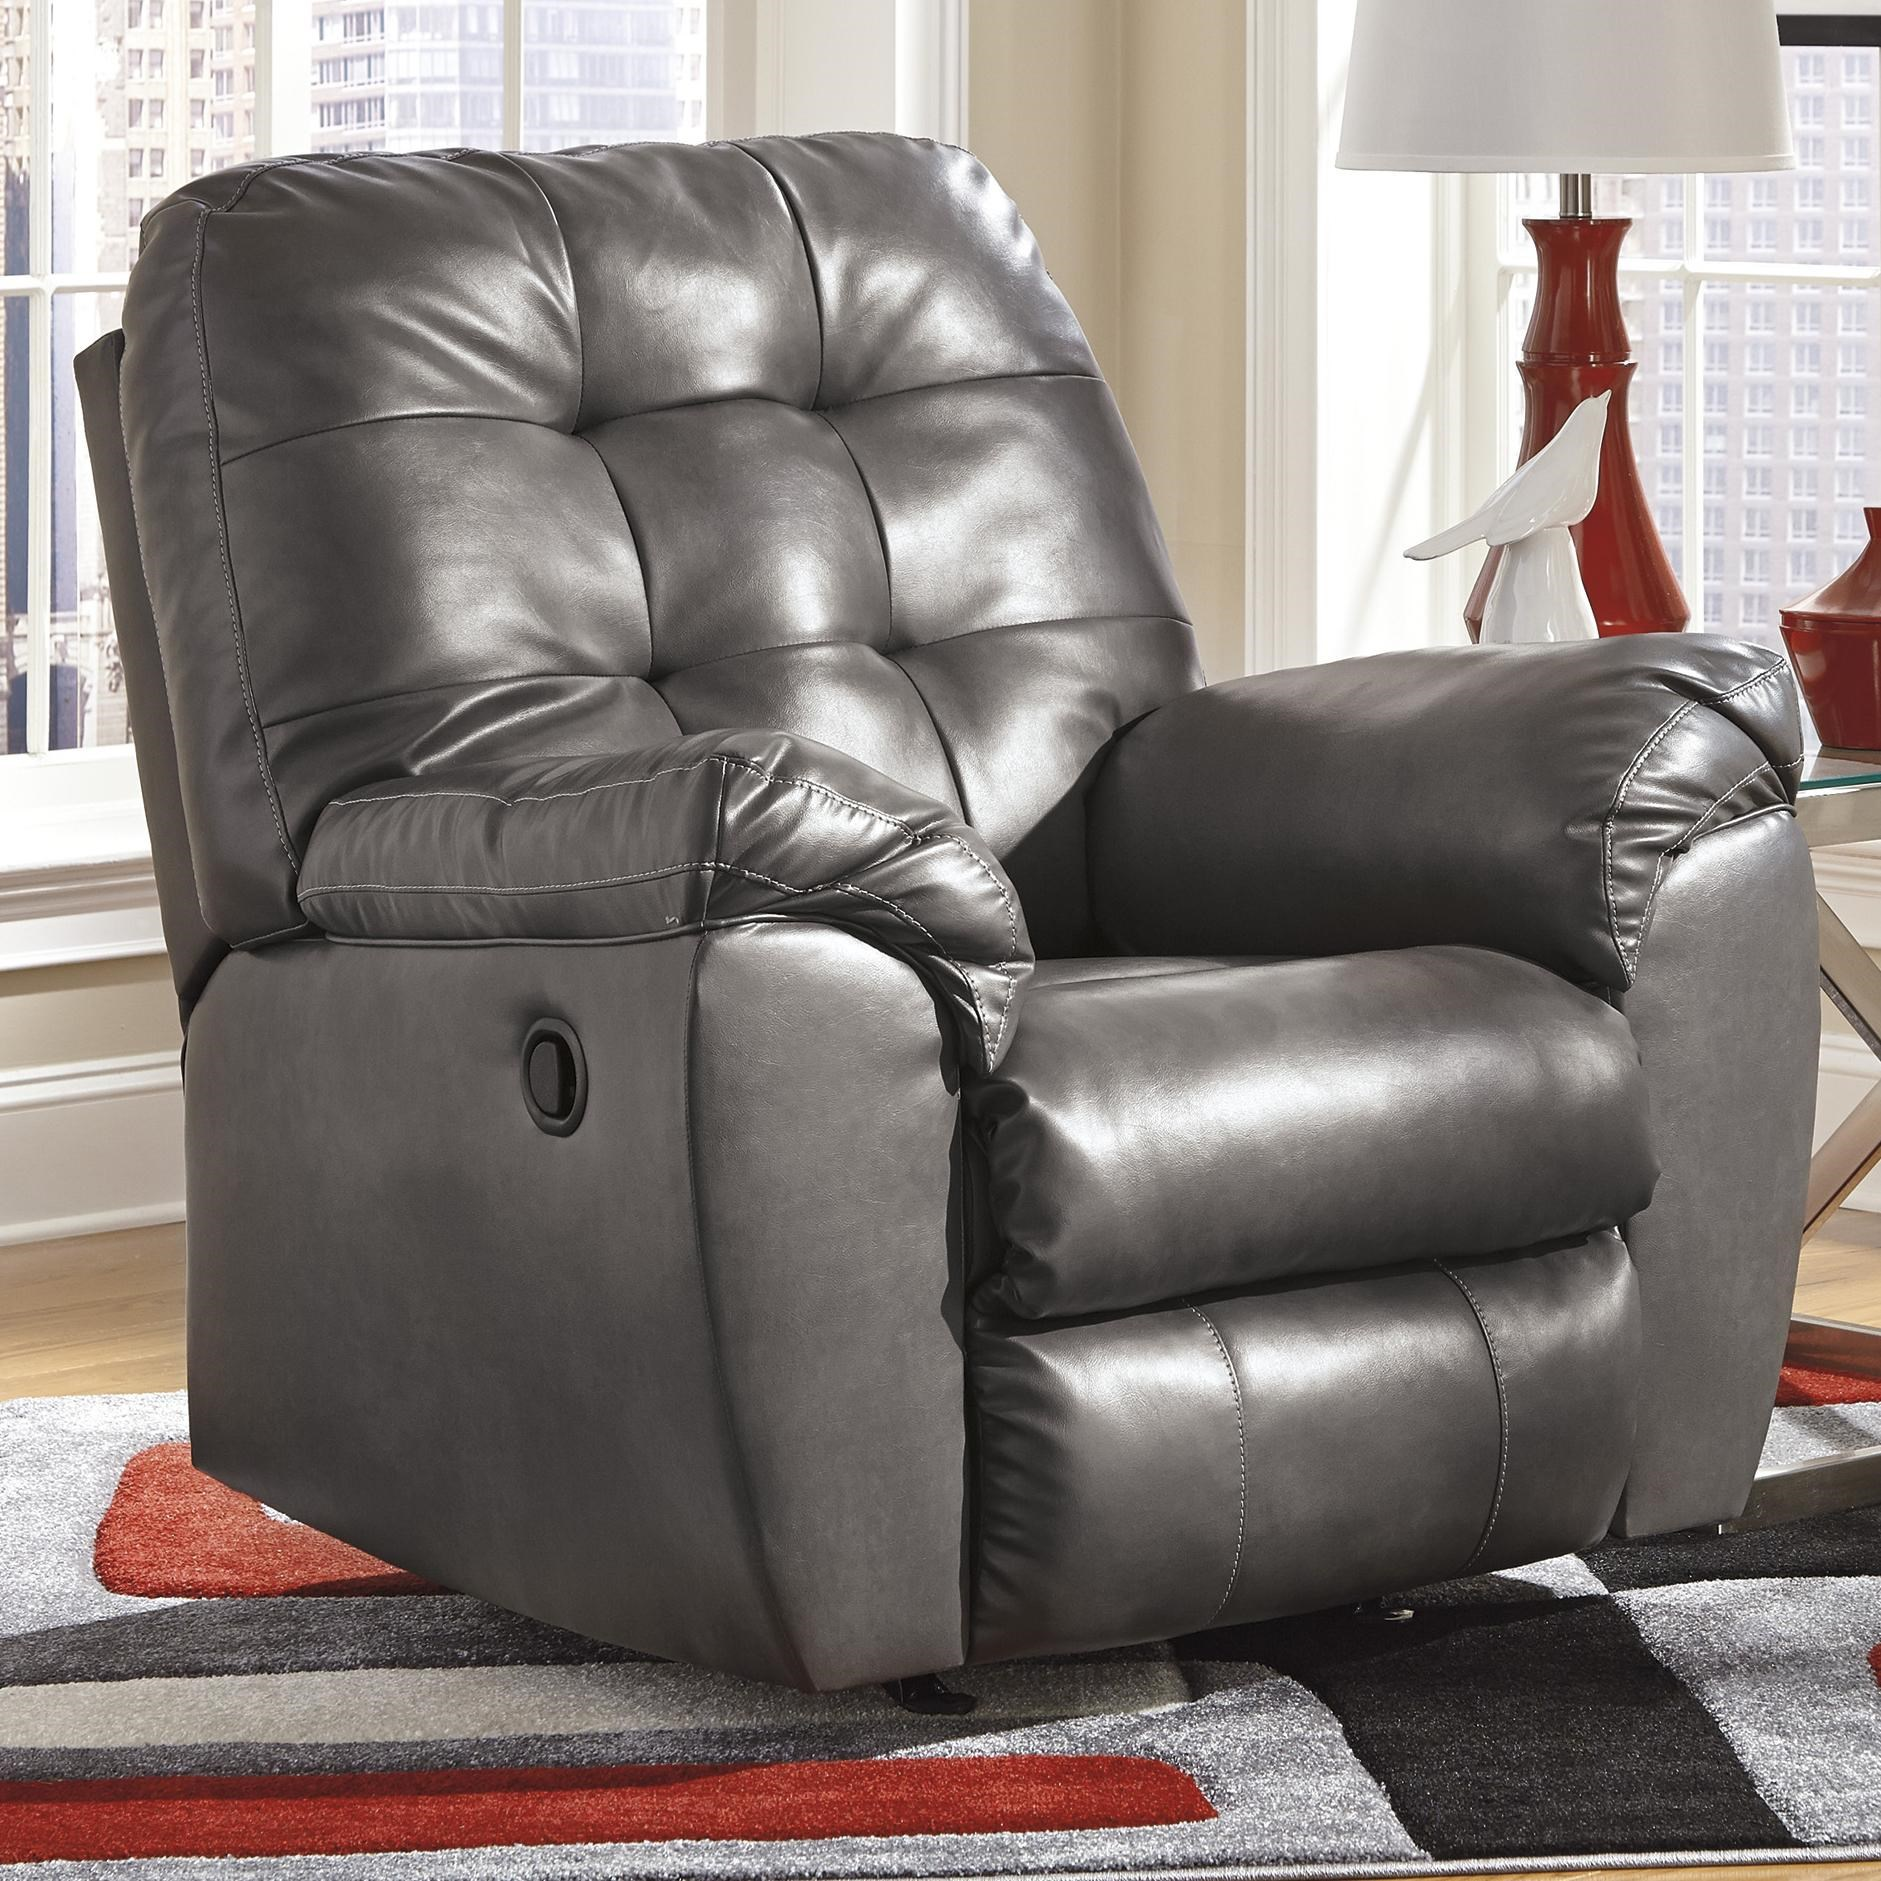 Recliner Pillow Maddox Gray Rocker Recliner W Pillow Arms By Signature Design By Ashley At John V Schultz Furniture